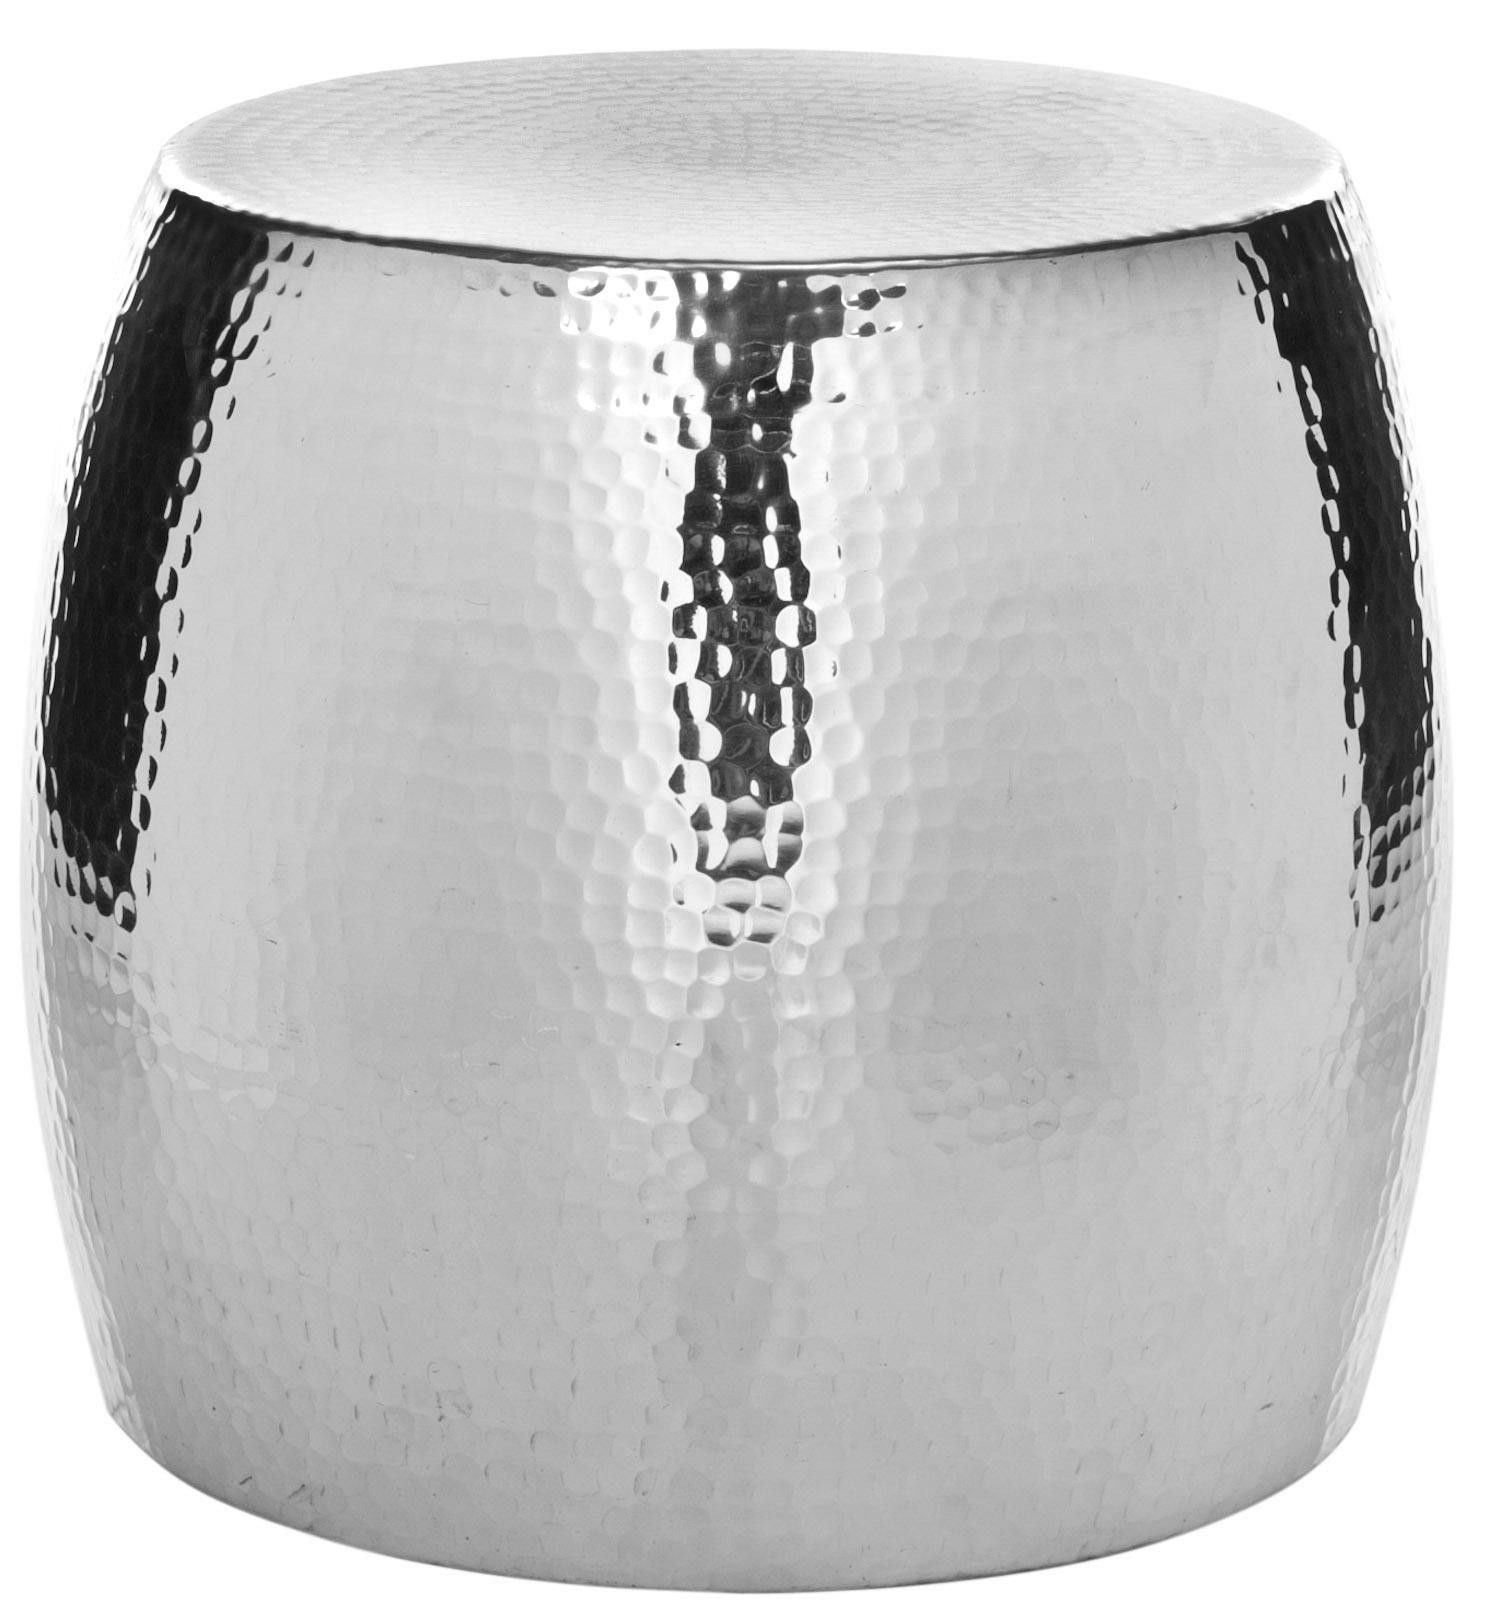 The Odin Round Hammered Stoolu0027s Resilient Polished Aluminum Silver Sparkle  And Subtly Textured Finish Create Its Brilliant Persona.